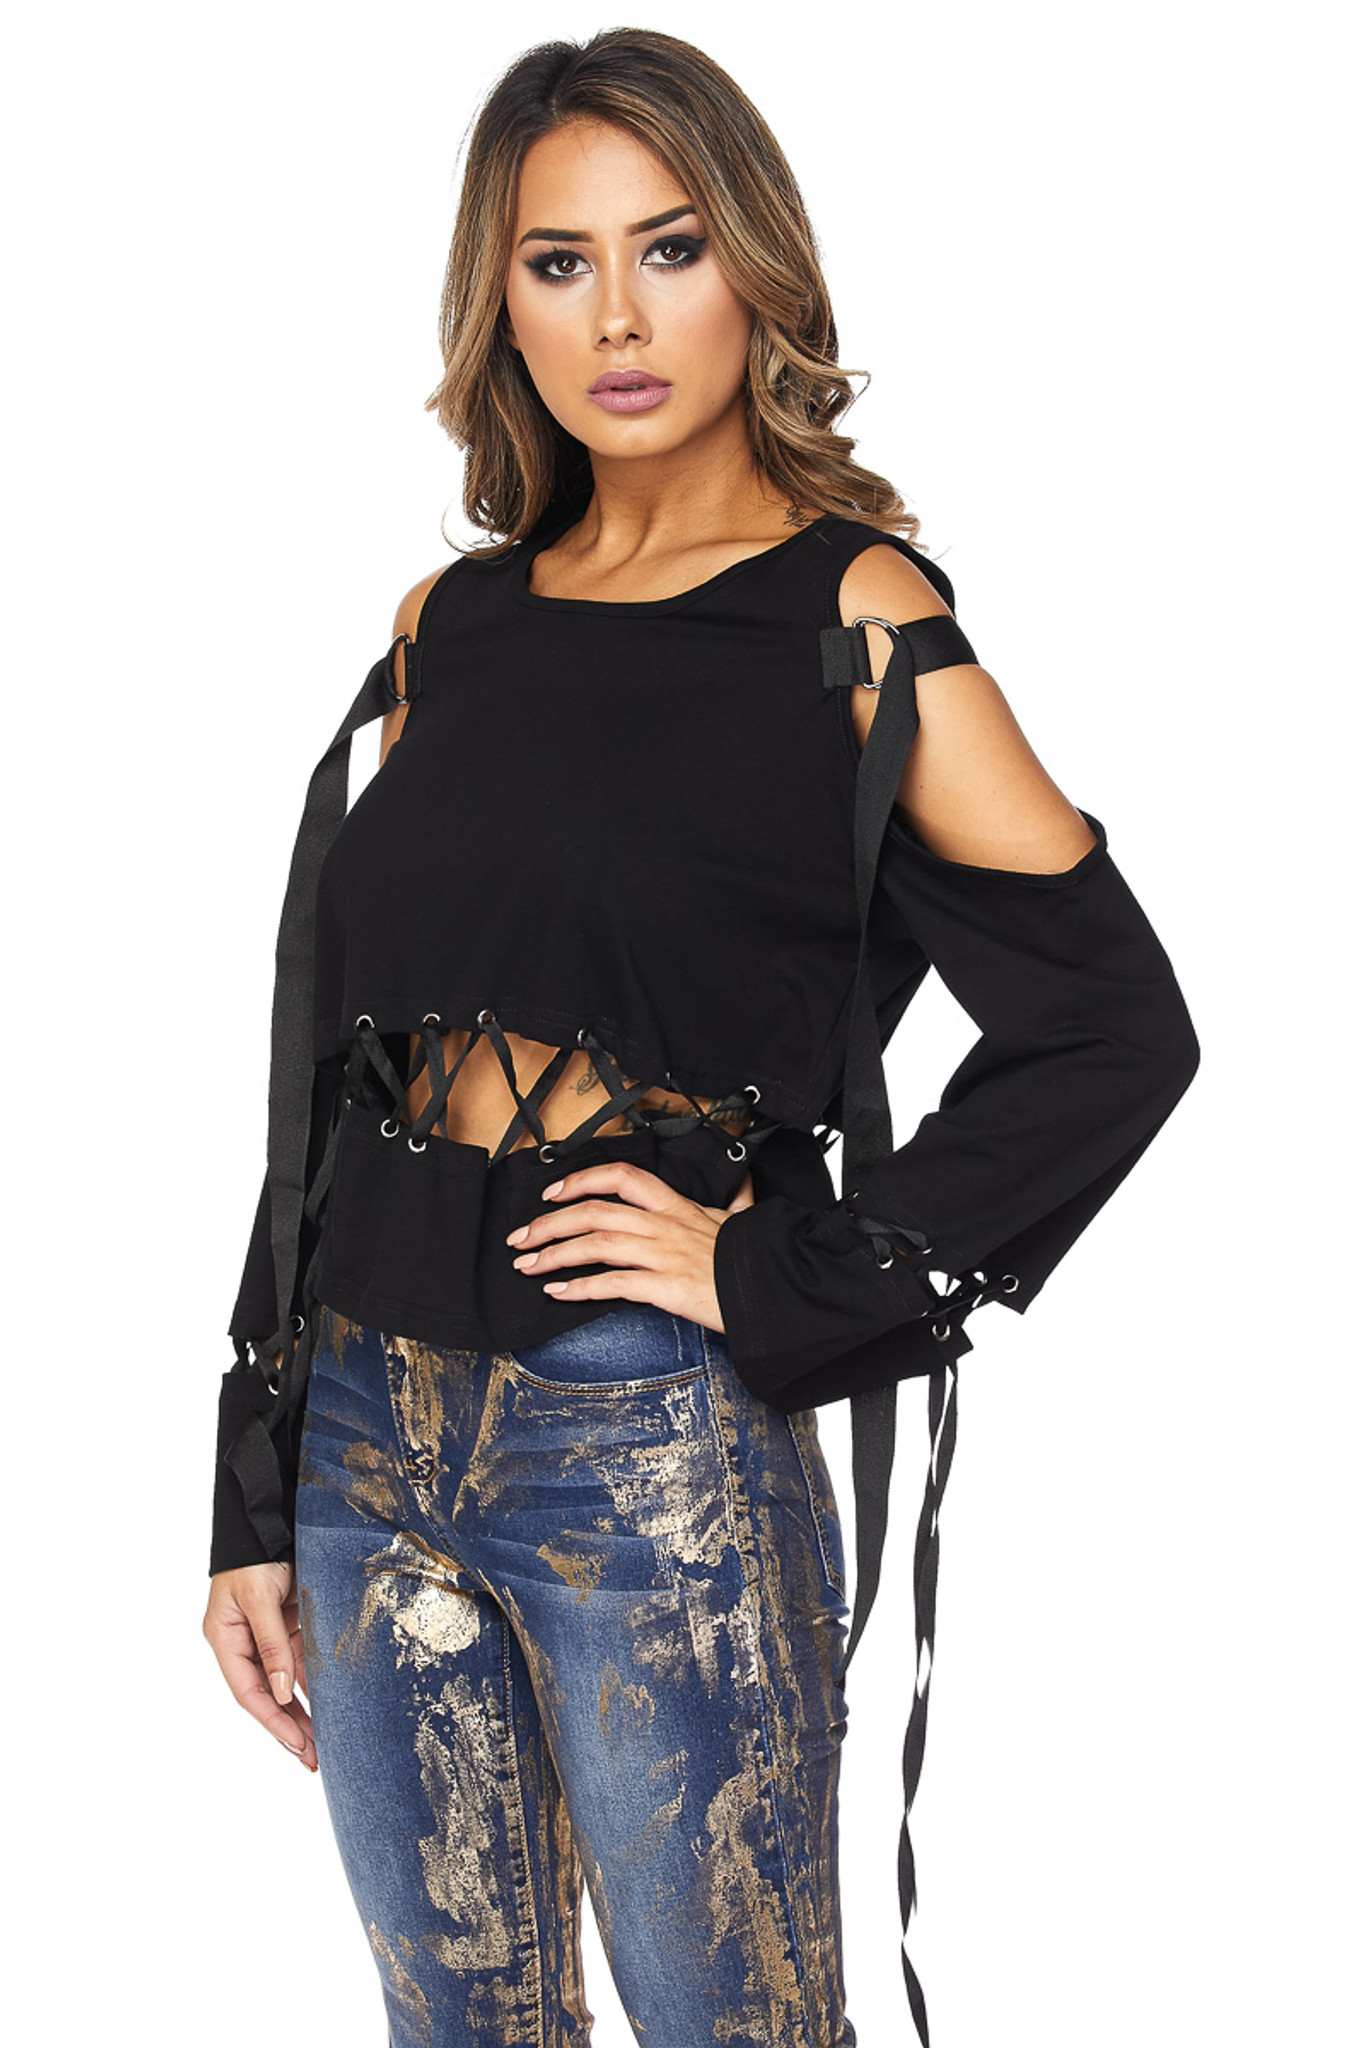 Black cut out lace top with strap